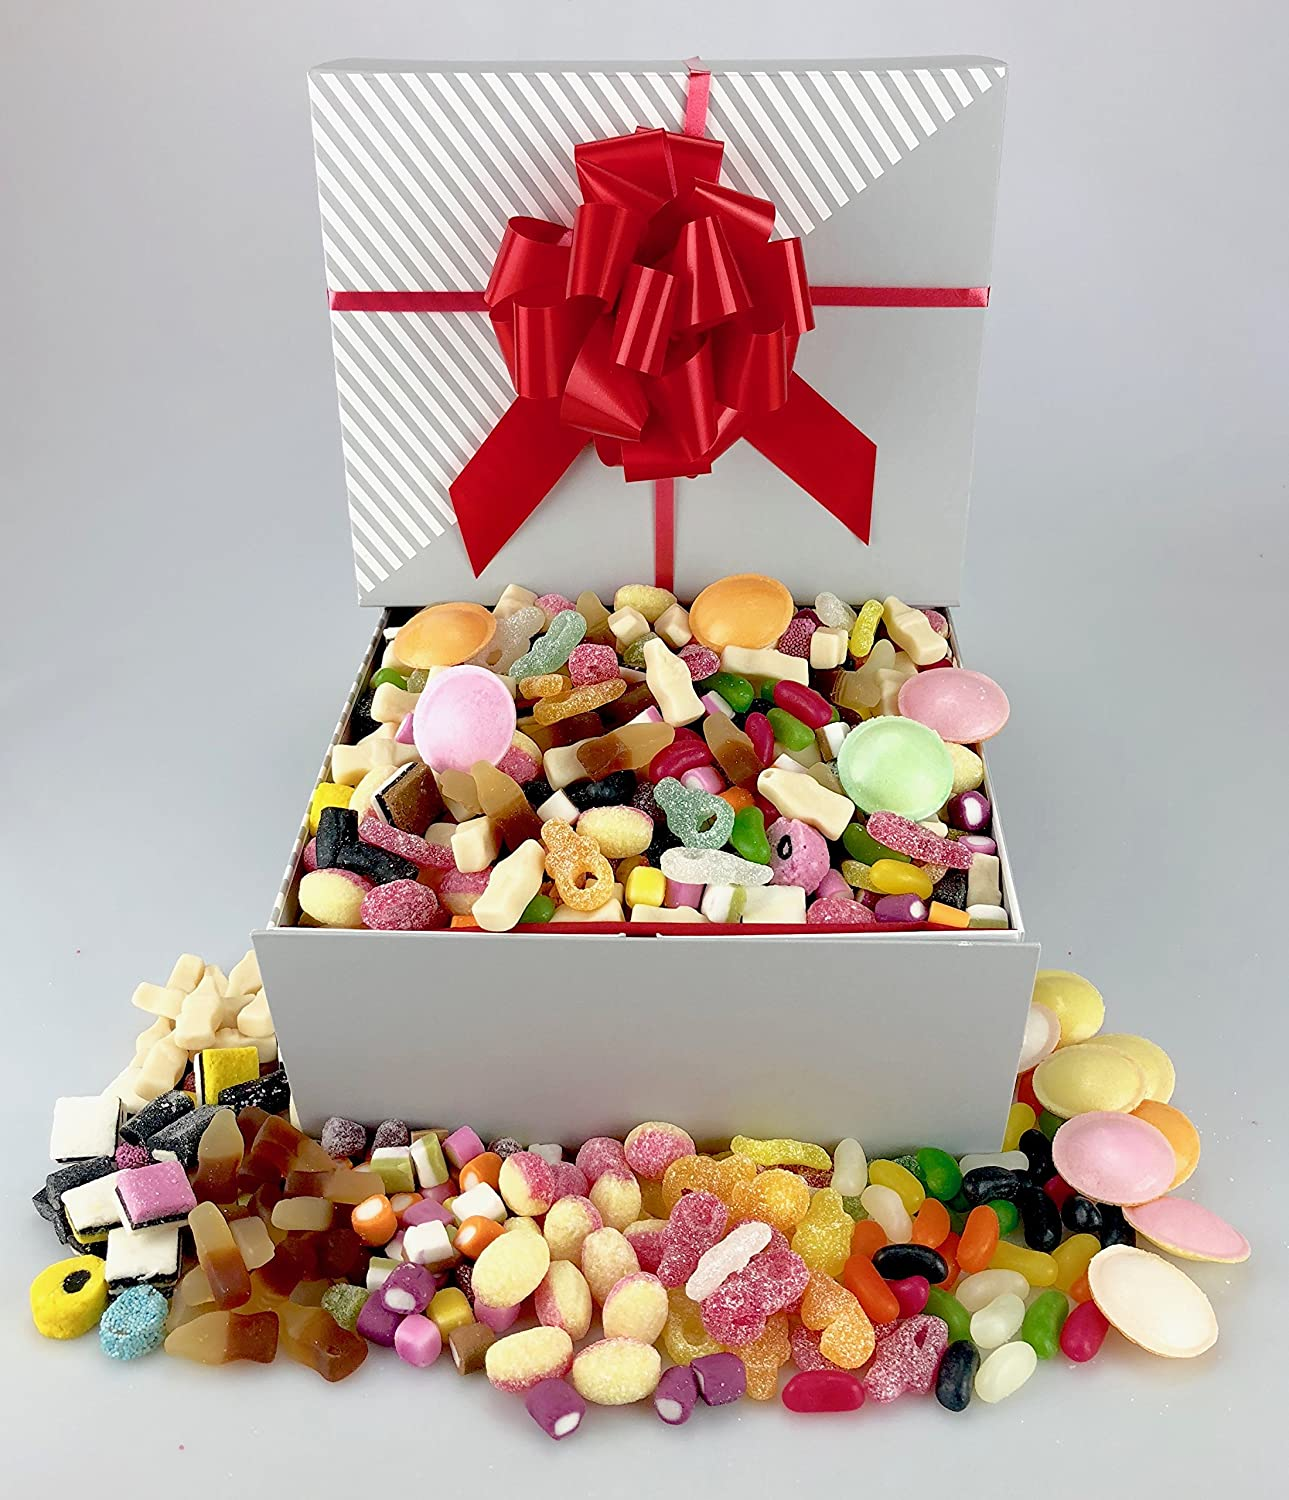 Deluxe Large RETRO SWEET HAMPER Gift Wrapped Birthday Engagement Graduation